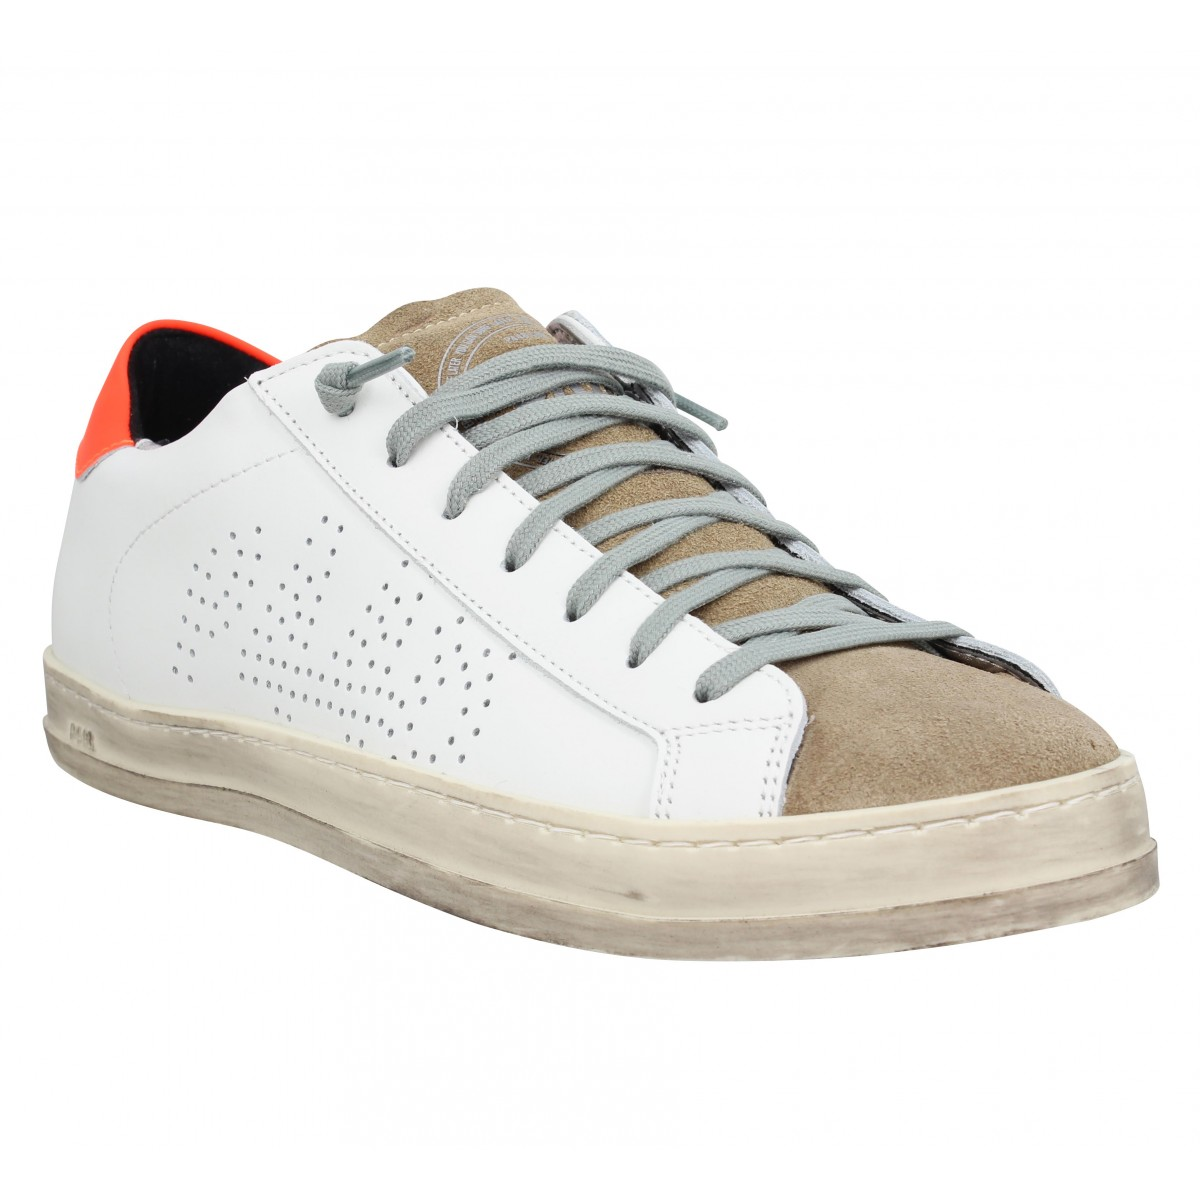 Baskets P448 John cuir velours Homme Blanc Orange